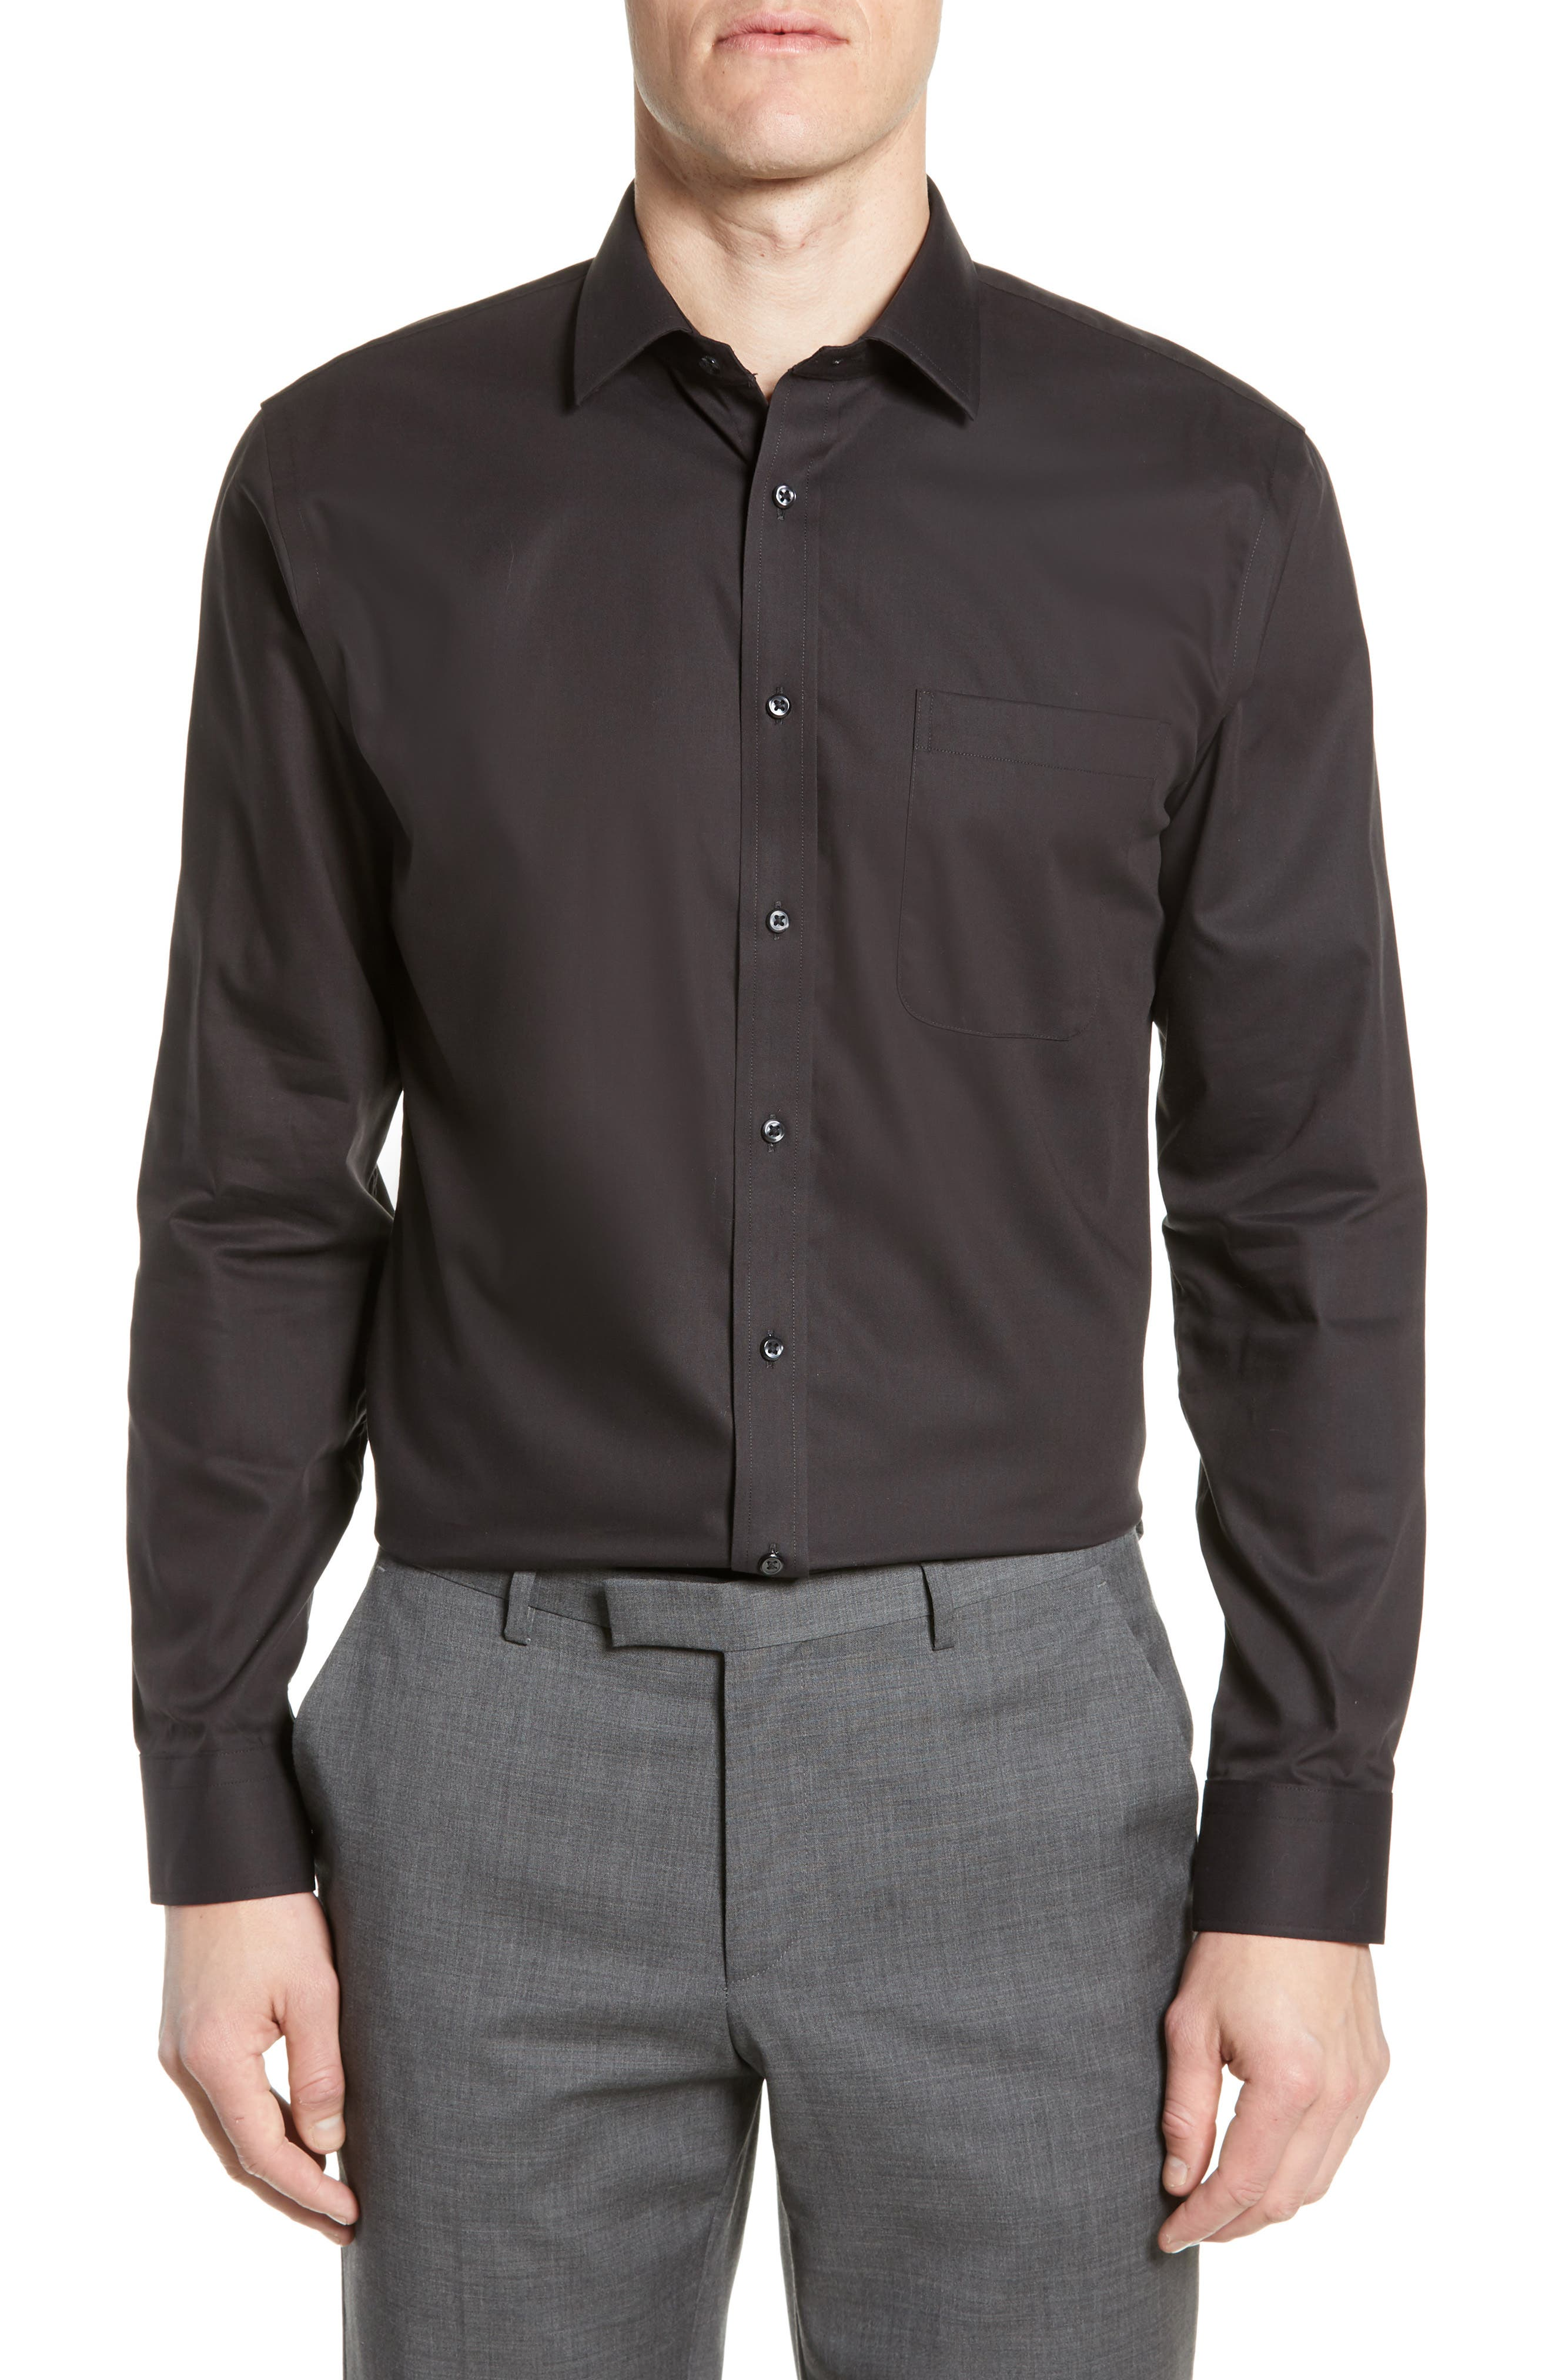 NORDSTROM MEN'S SHOP, Trim Fit Non-Iron Dress Shirt, Main thumbnail 1, color, BLACK